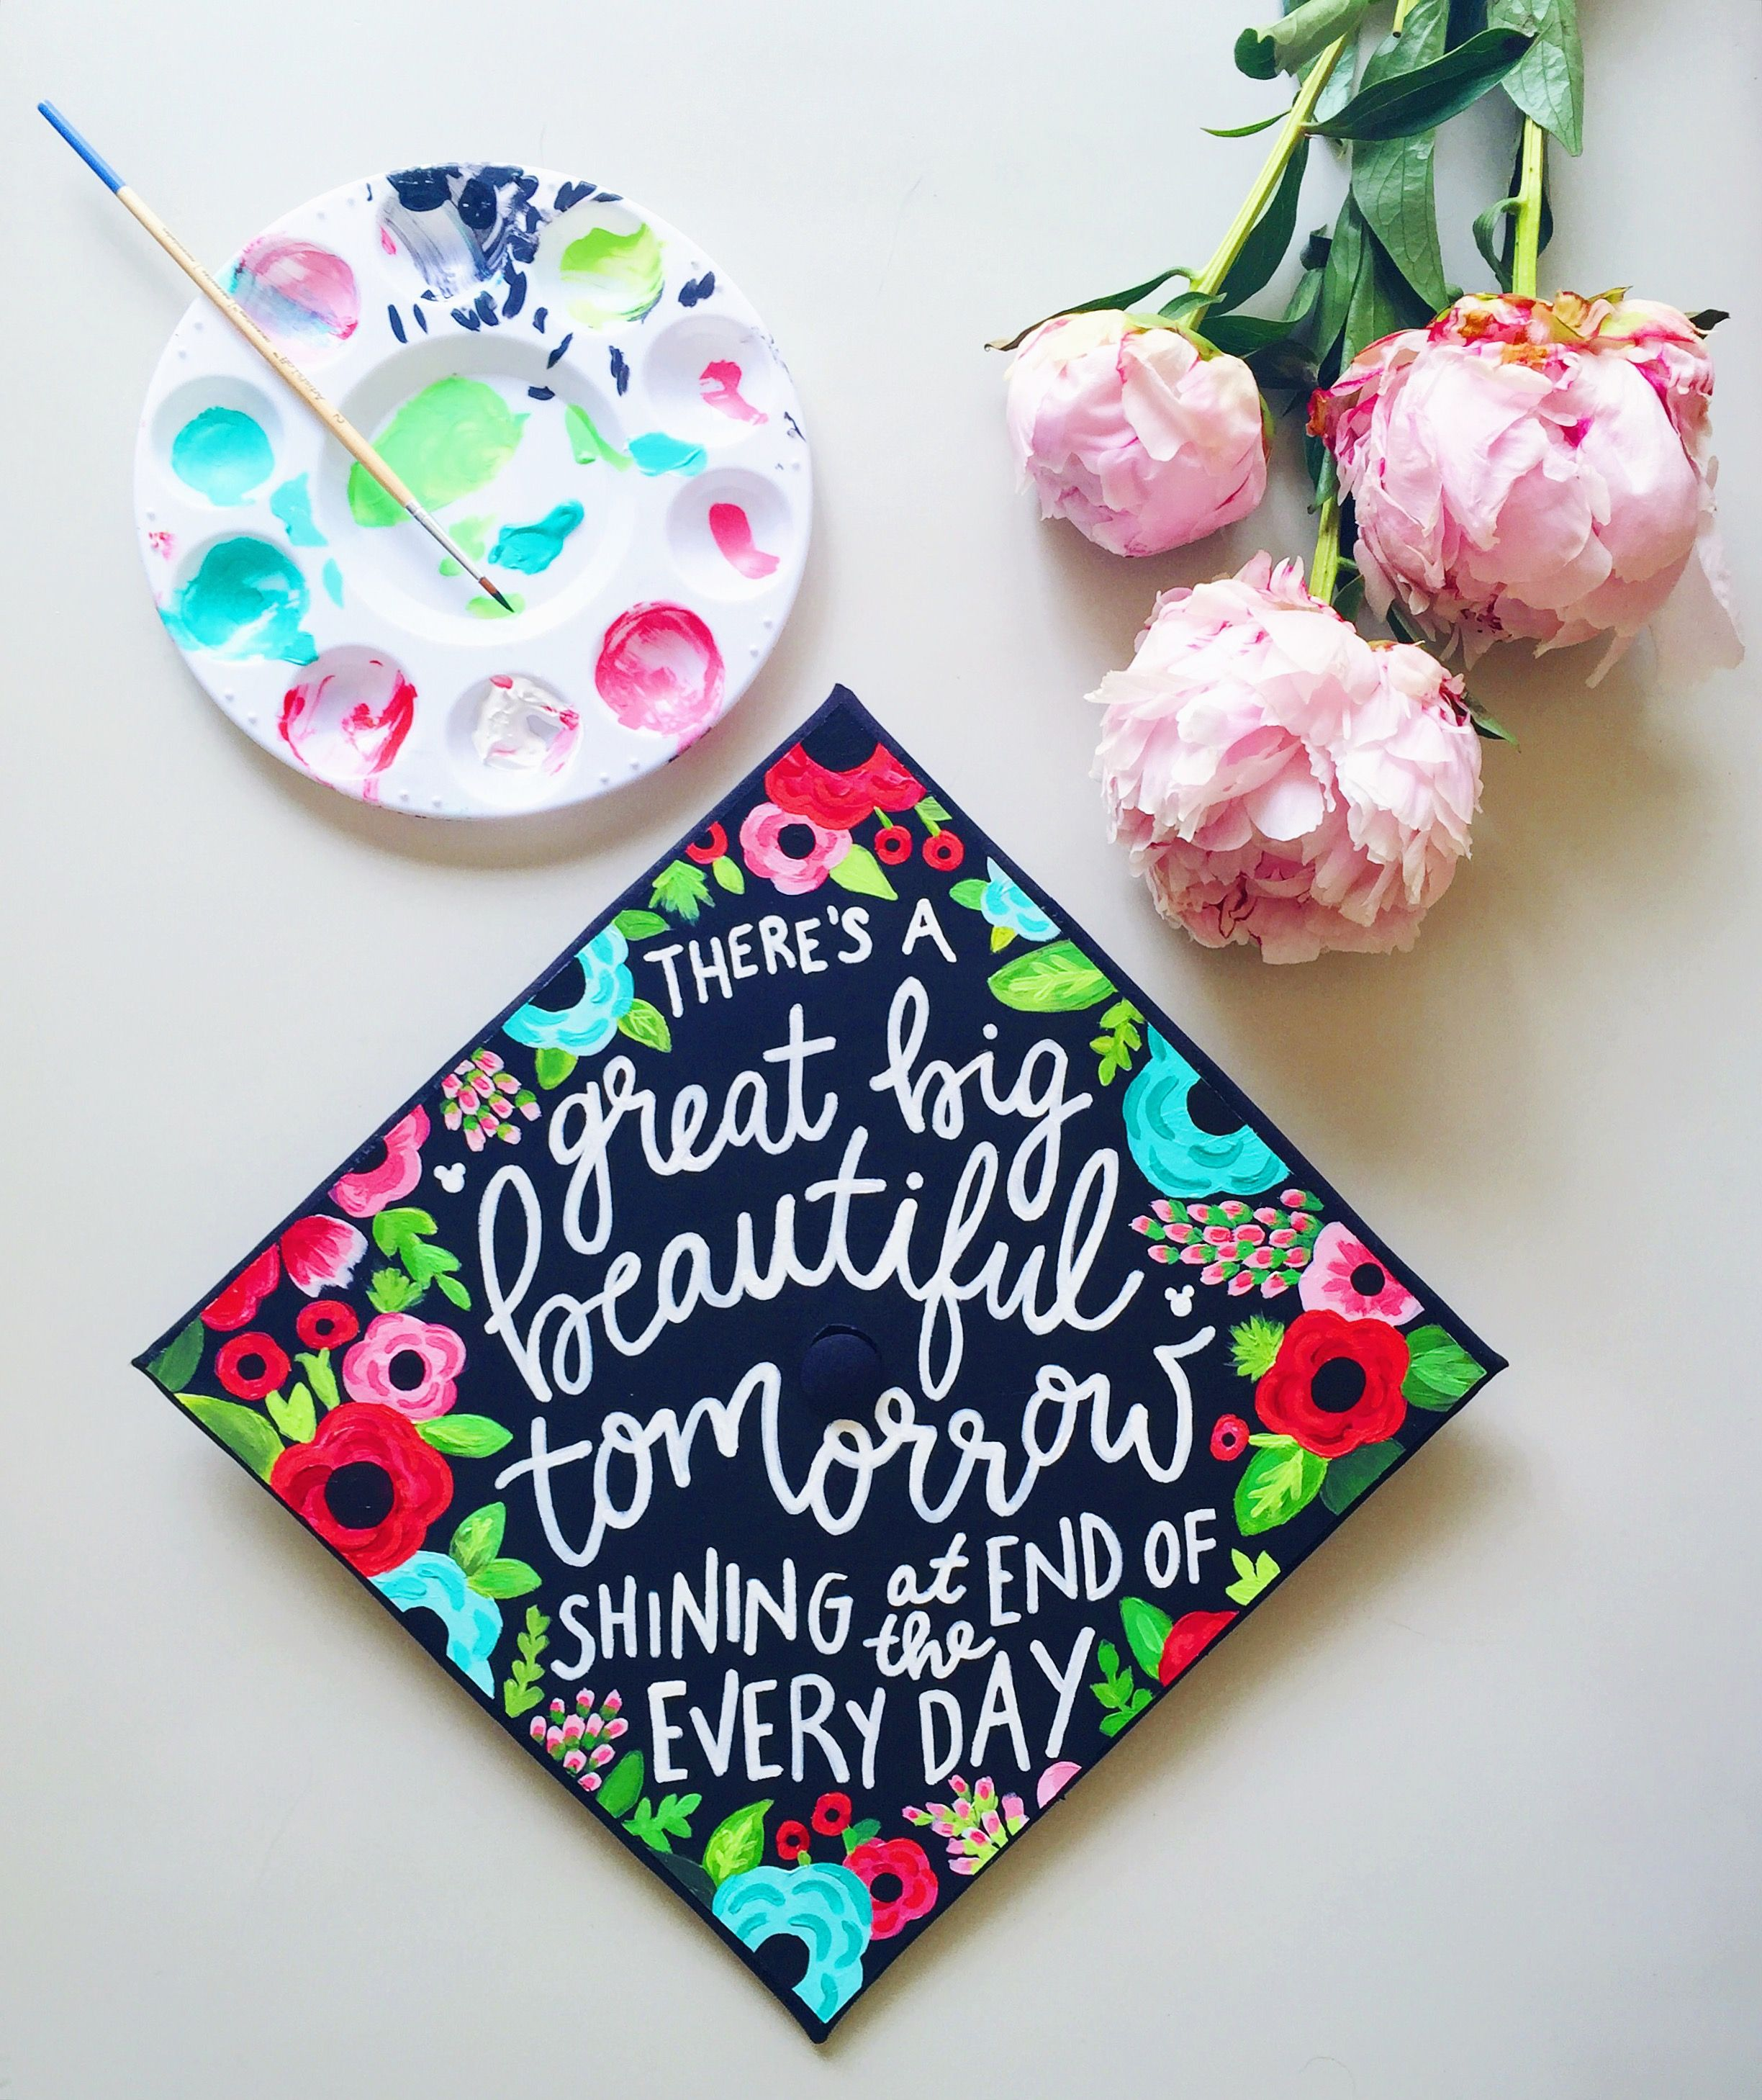 Decorating graduation cap ideas for teachers - Rit Grad Cap 2016 There S A Great Big Beautiful Tomorrow Shining At The End Of Every Day Walt Disney